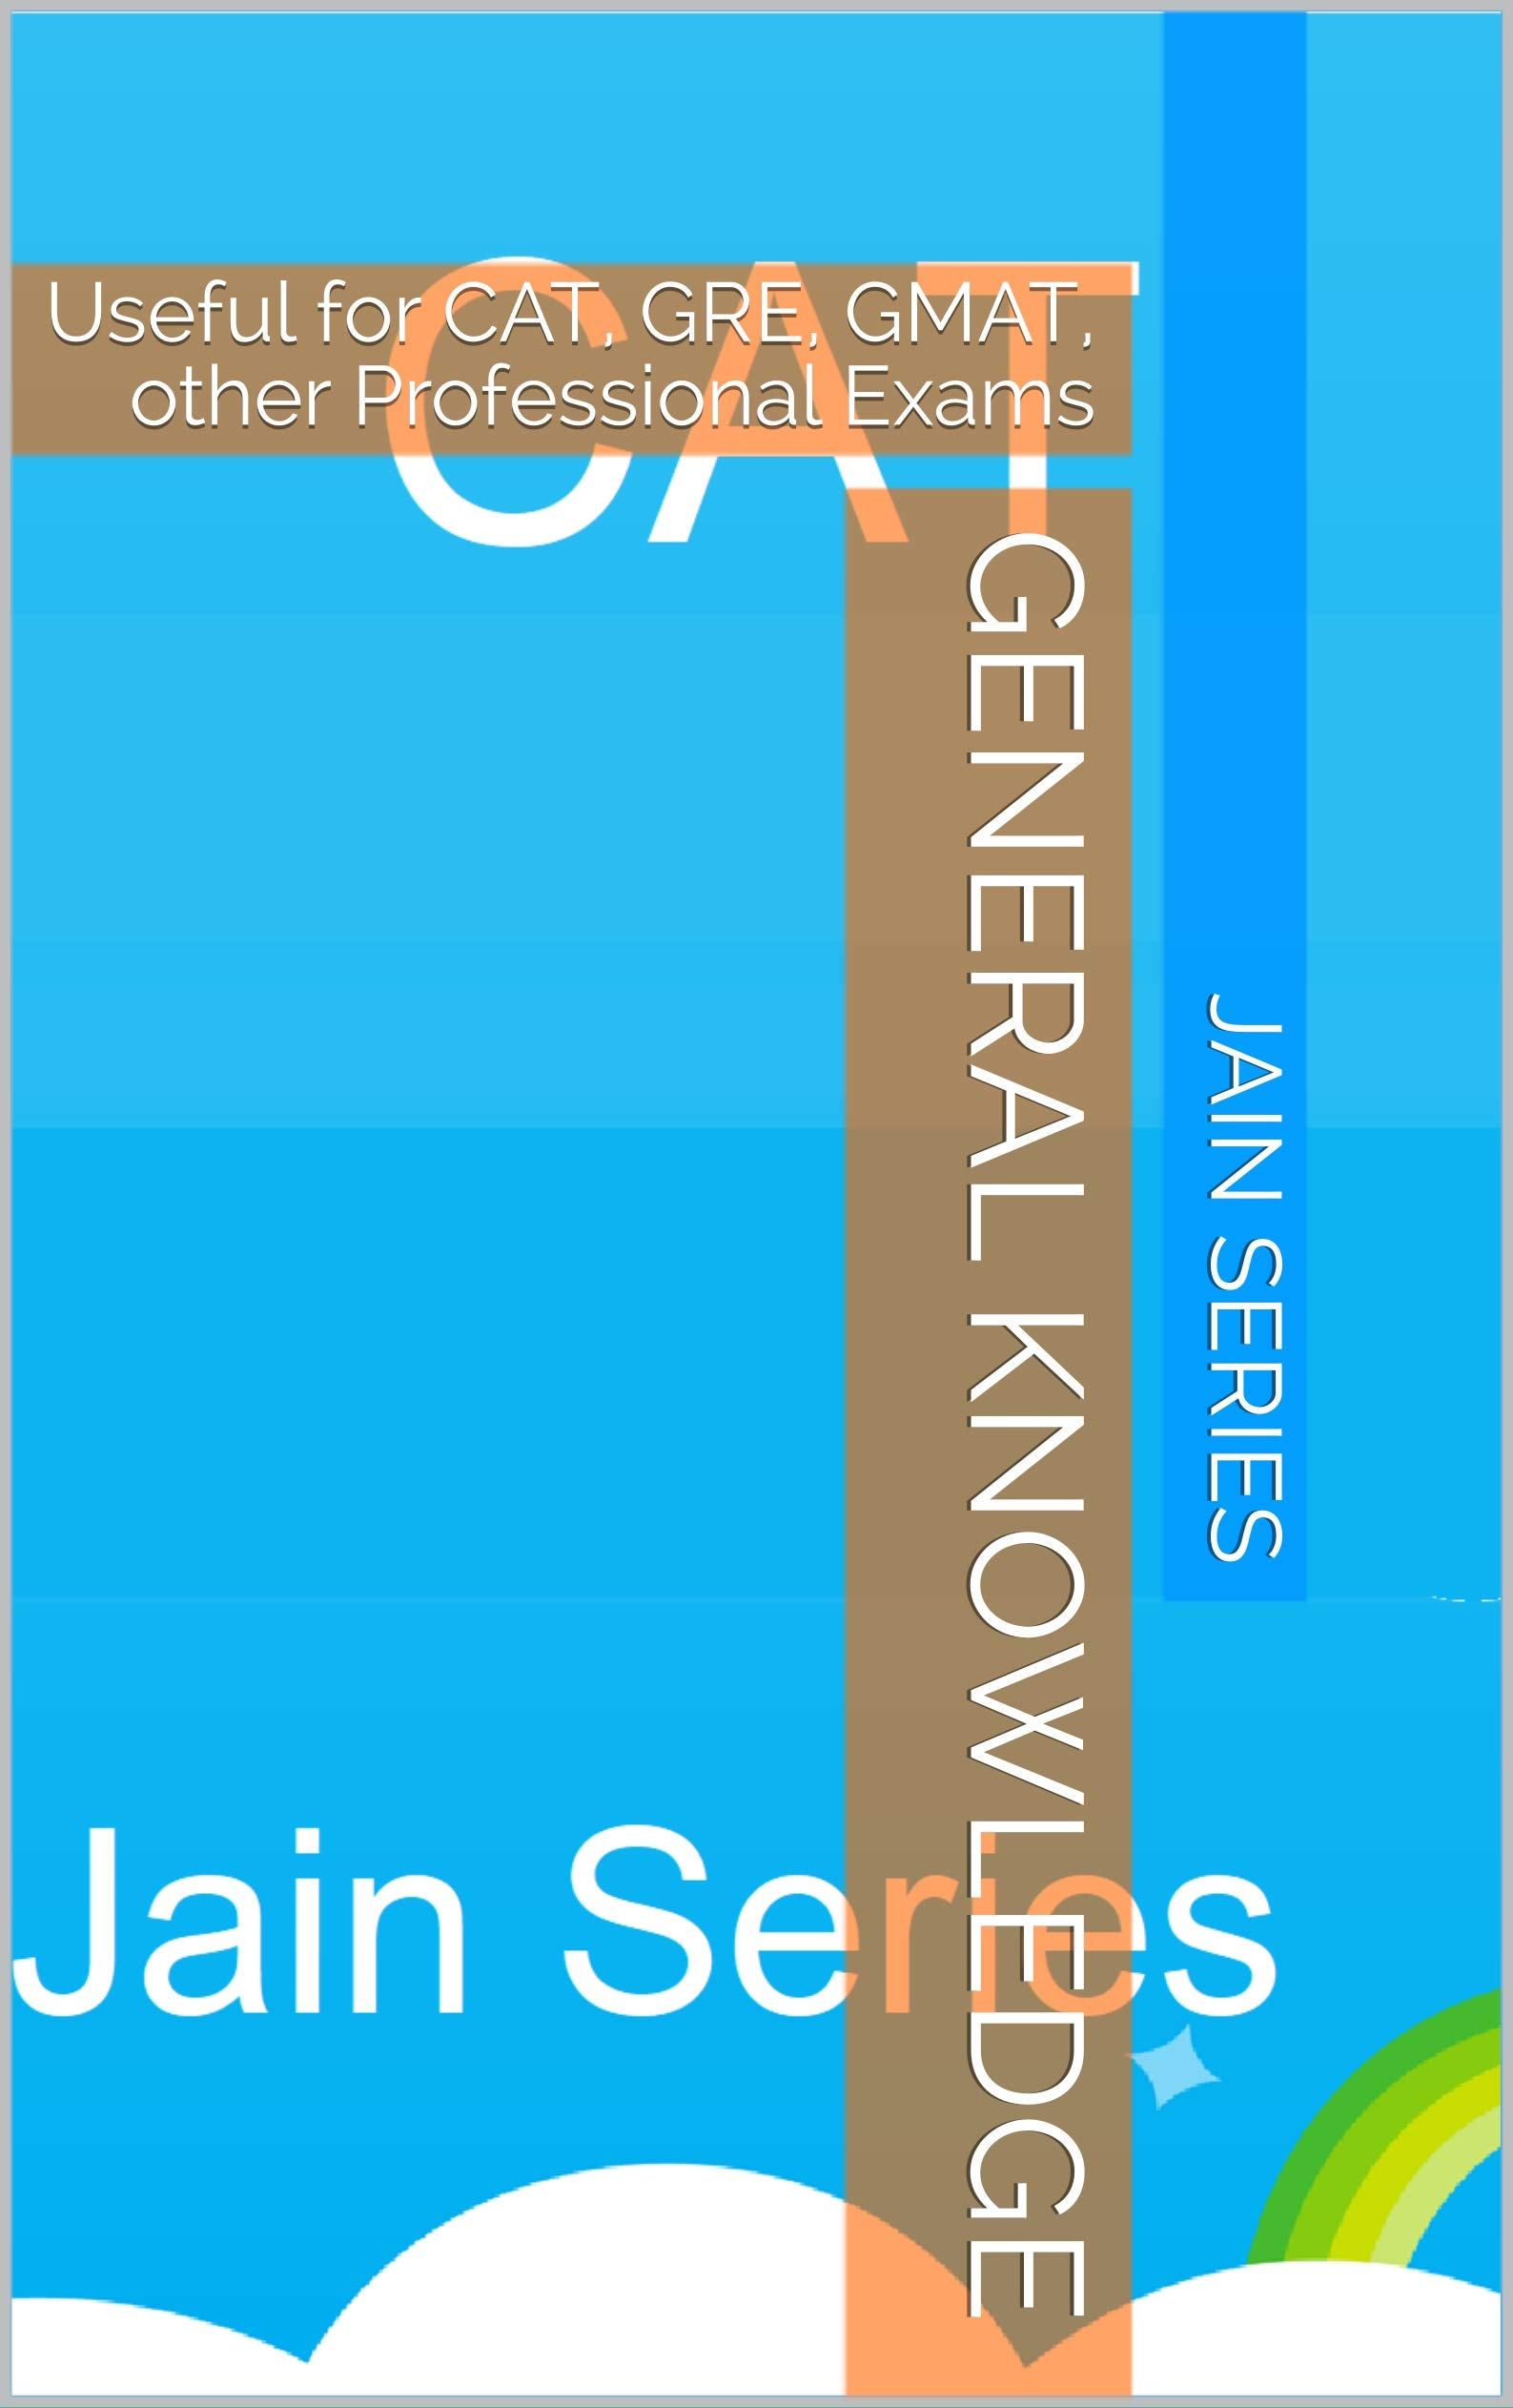 General Knowledge: Useful for CAT, GRE, GMAT, other Professional Exams